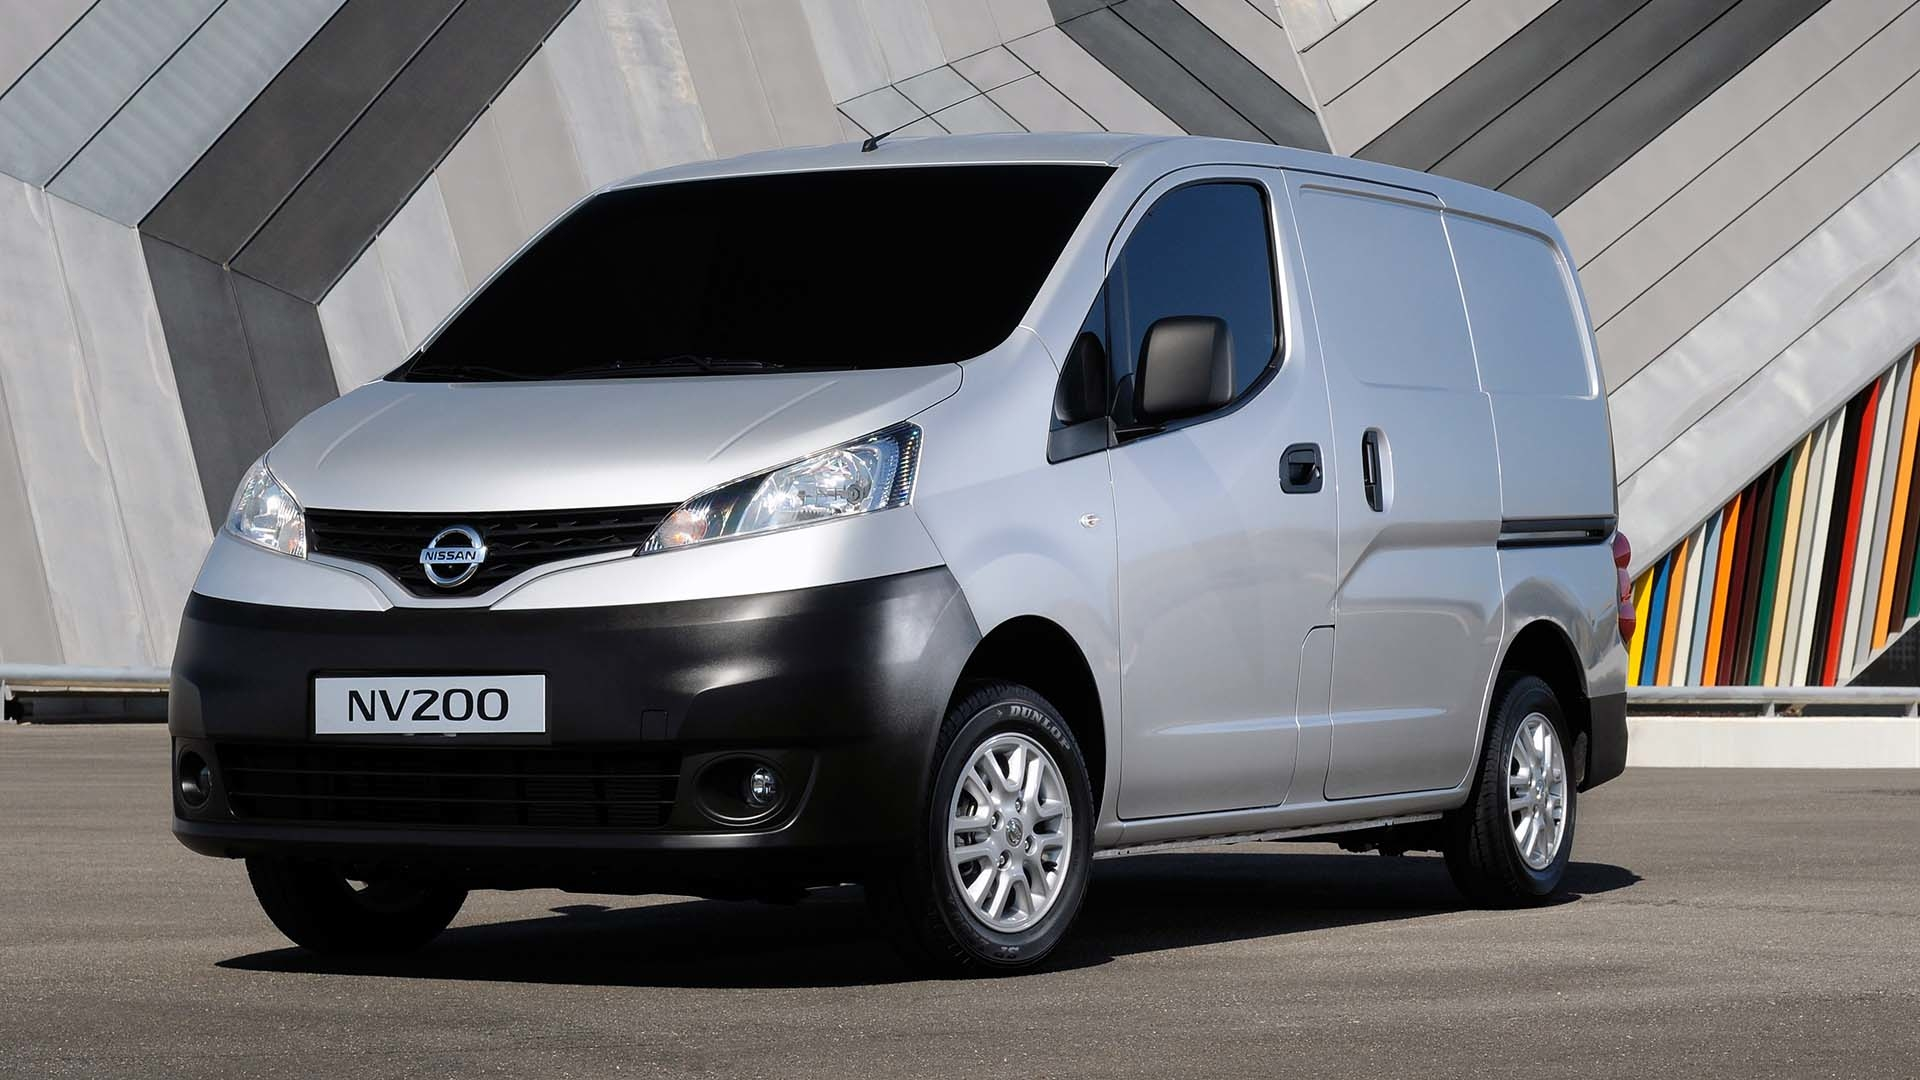 Nissan NV200 is most reliable LCV